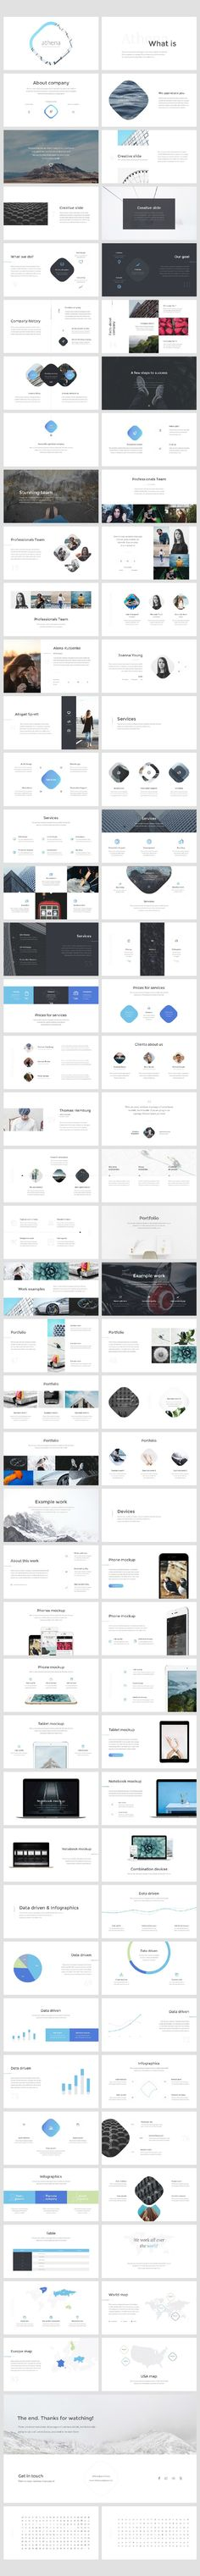 Buy VIDOVA - Modern Keynote Presentation by Slidekick on GraphicRiver. VIDOVA is Keynote Presentation Template with Minimal, Simple and Modern Slide Design. Web Design, Website Design, Slide Design, Layout Design, Graphic Design, Design Presentation, Presentation Slides, Presentation Templates, Keynote Template